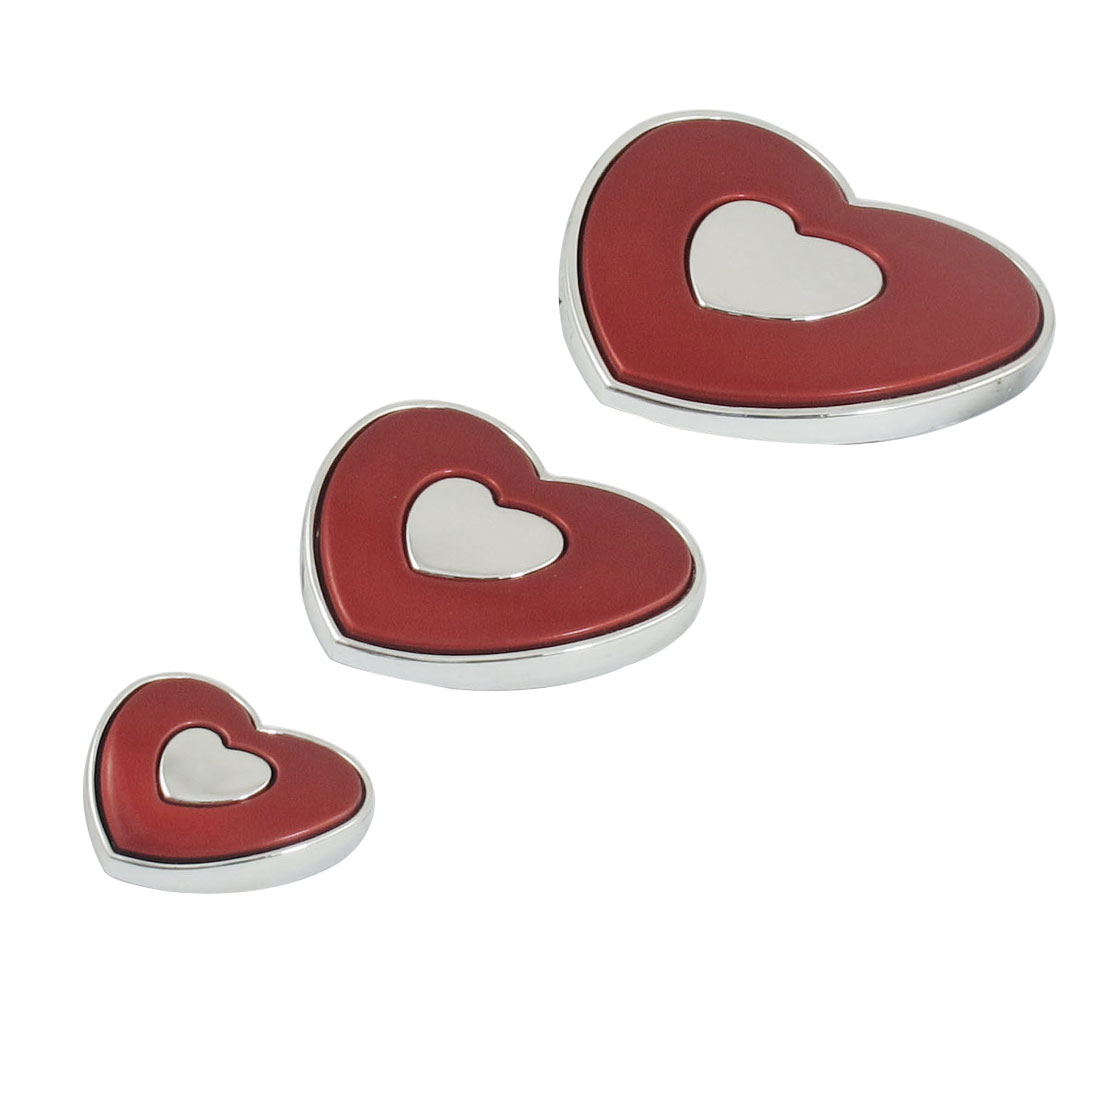 3 Pcs Red Silver Tone Plastic Heart-shaped Auto Emblem Door Car Badge Stickers